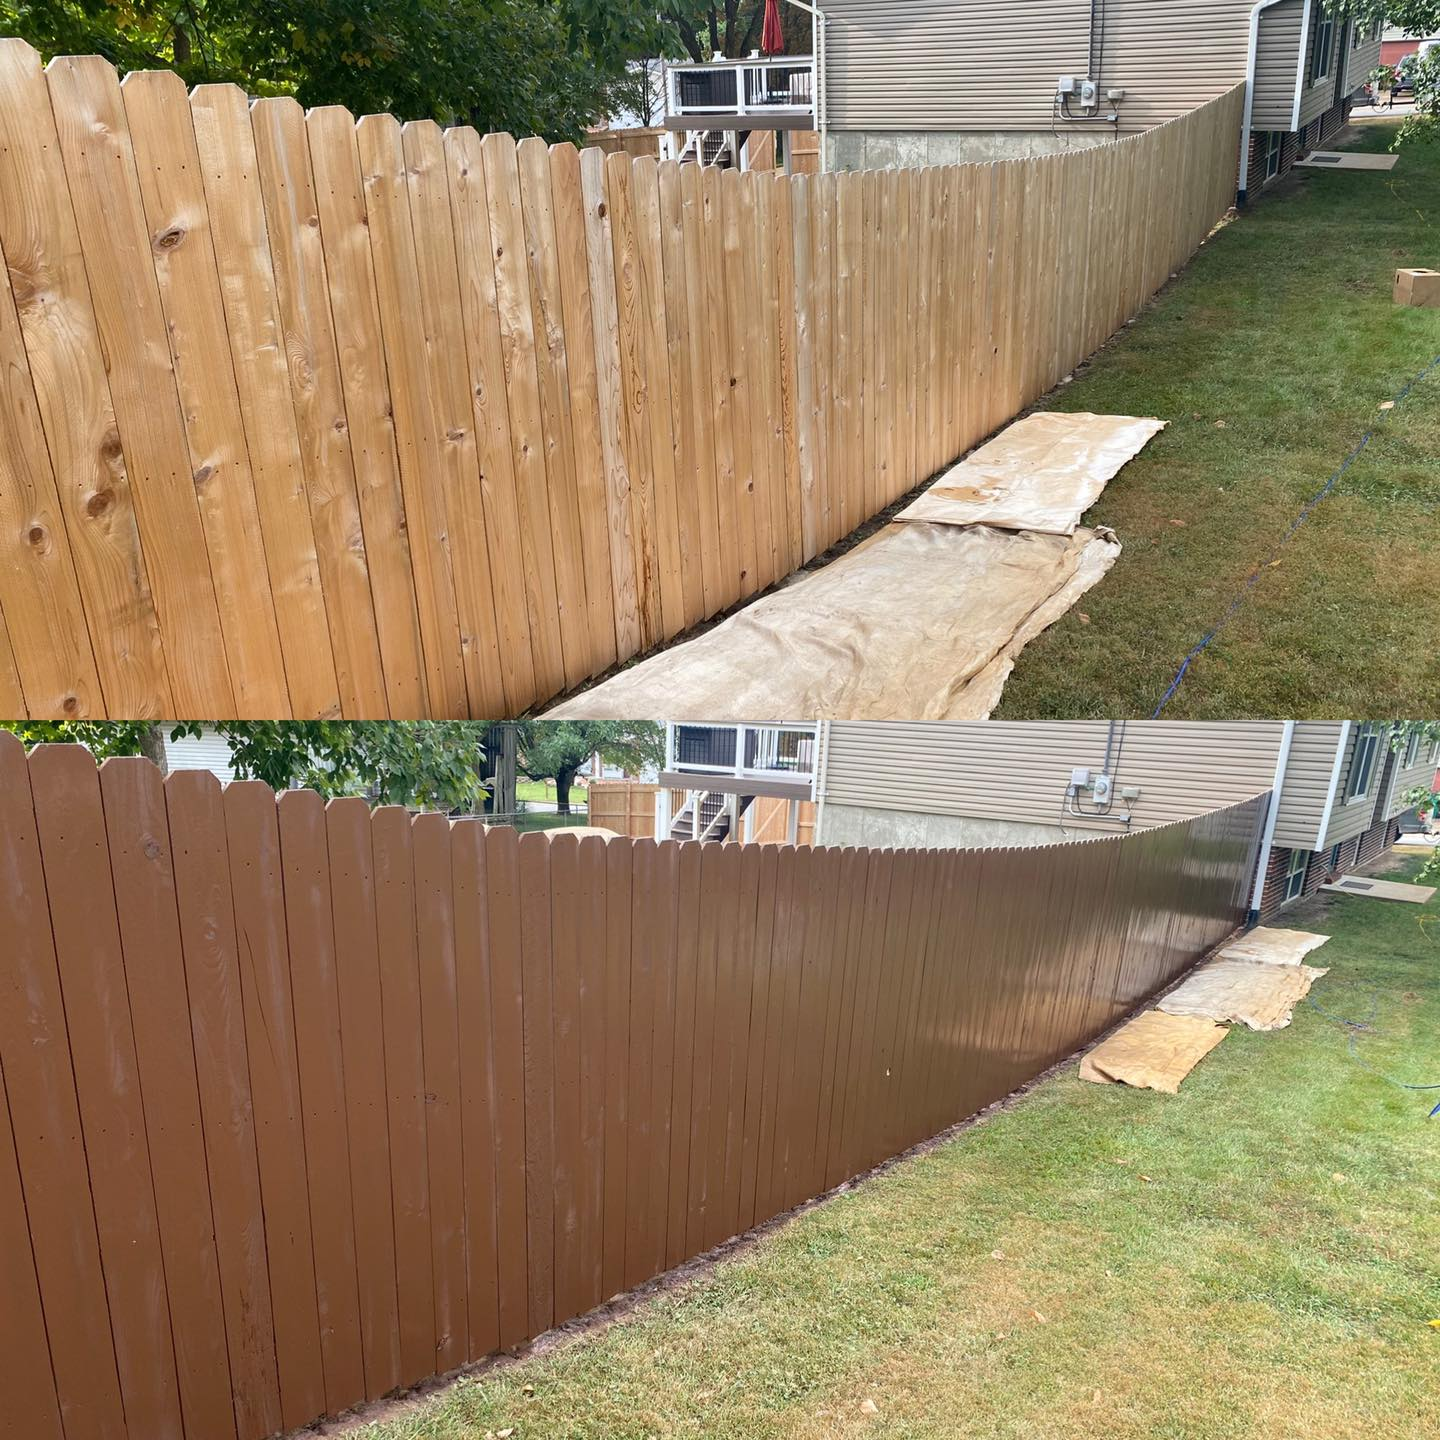 Before and after of wood fence showing paint removed to reveal wood grain.